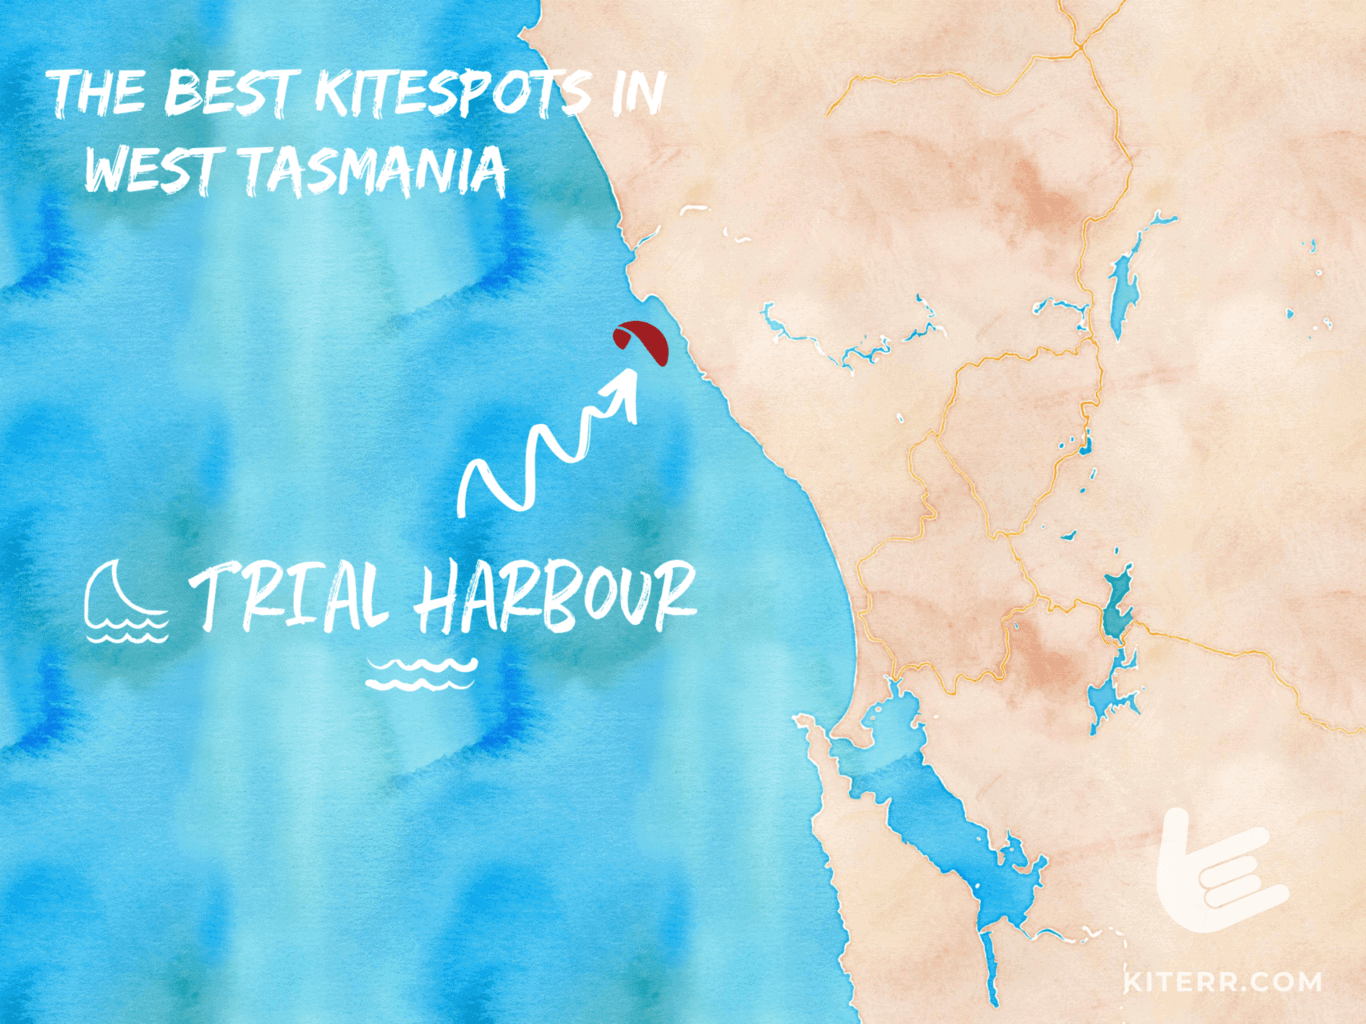 The best kitespots in West Tasmania // Kiterr.com